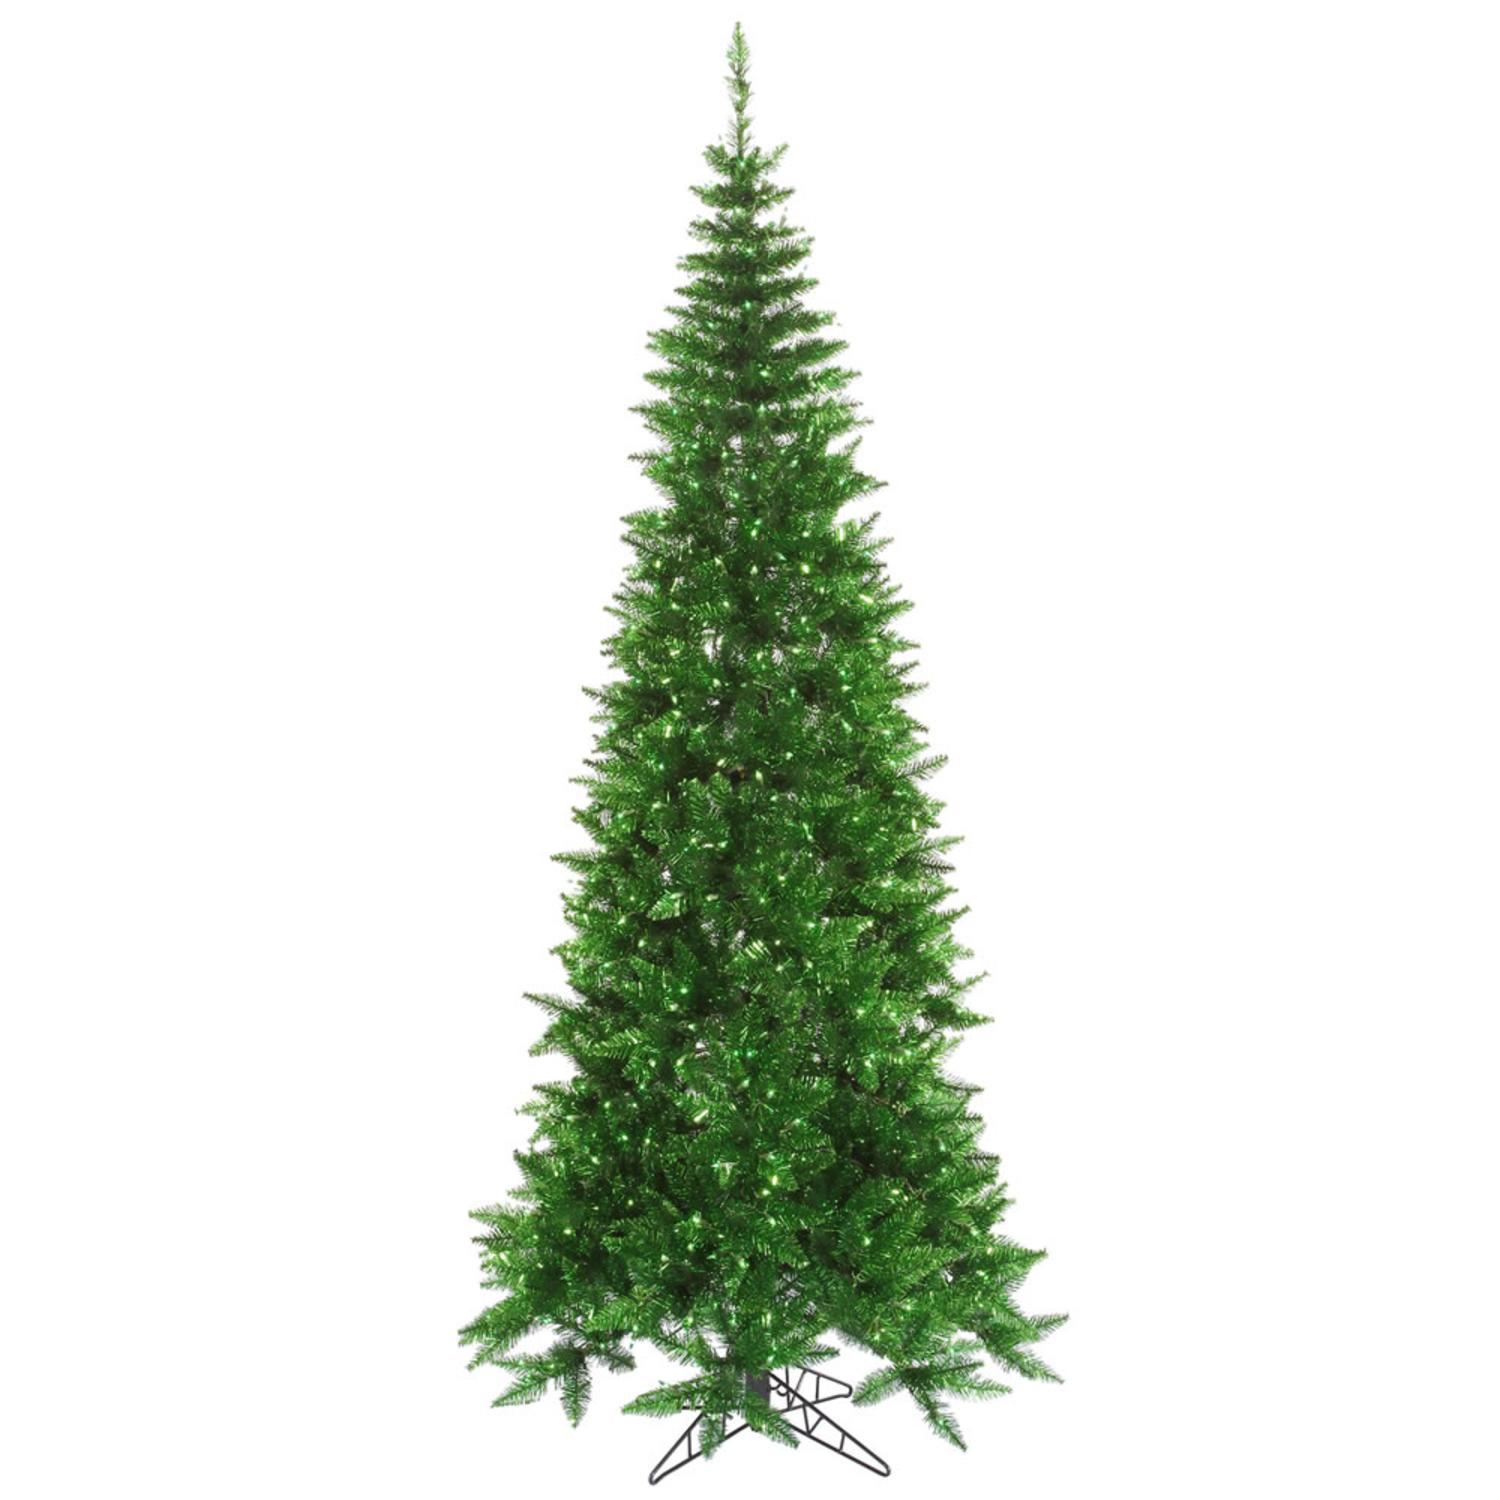 9' Pre-Lit Green Tinsel Slim Artificial Christmas Tree - Green Lights